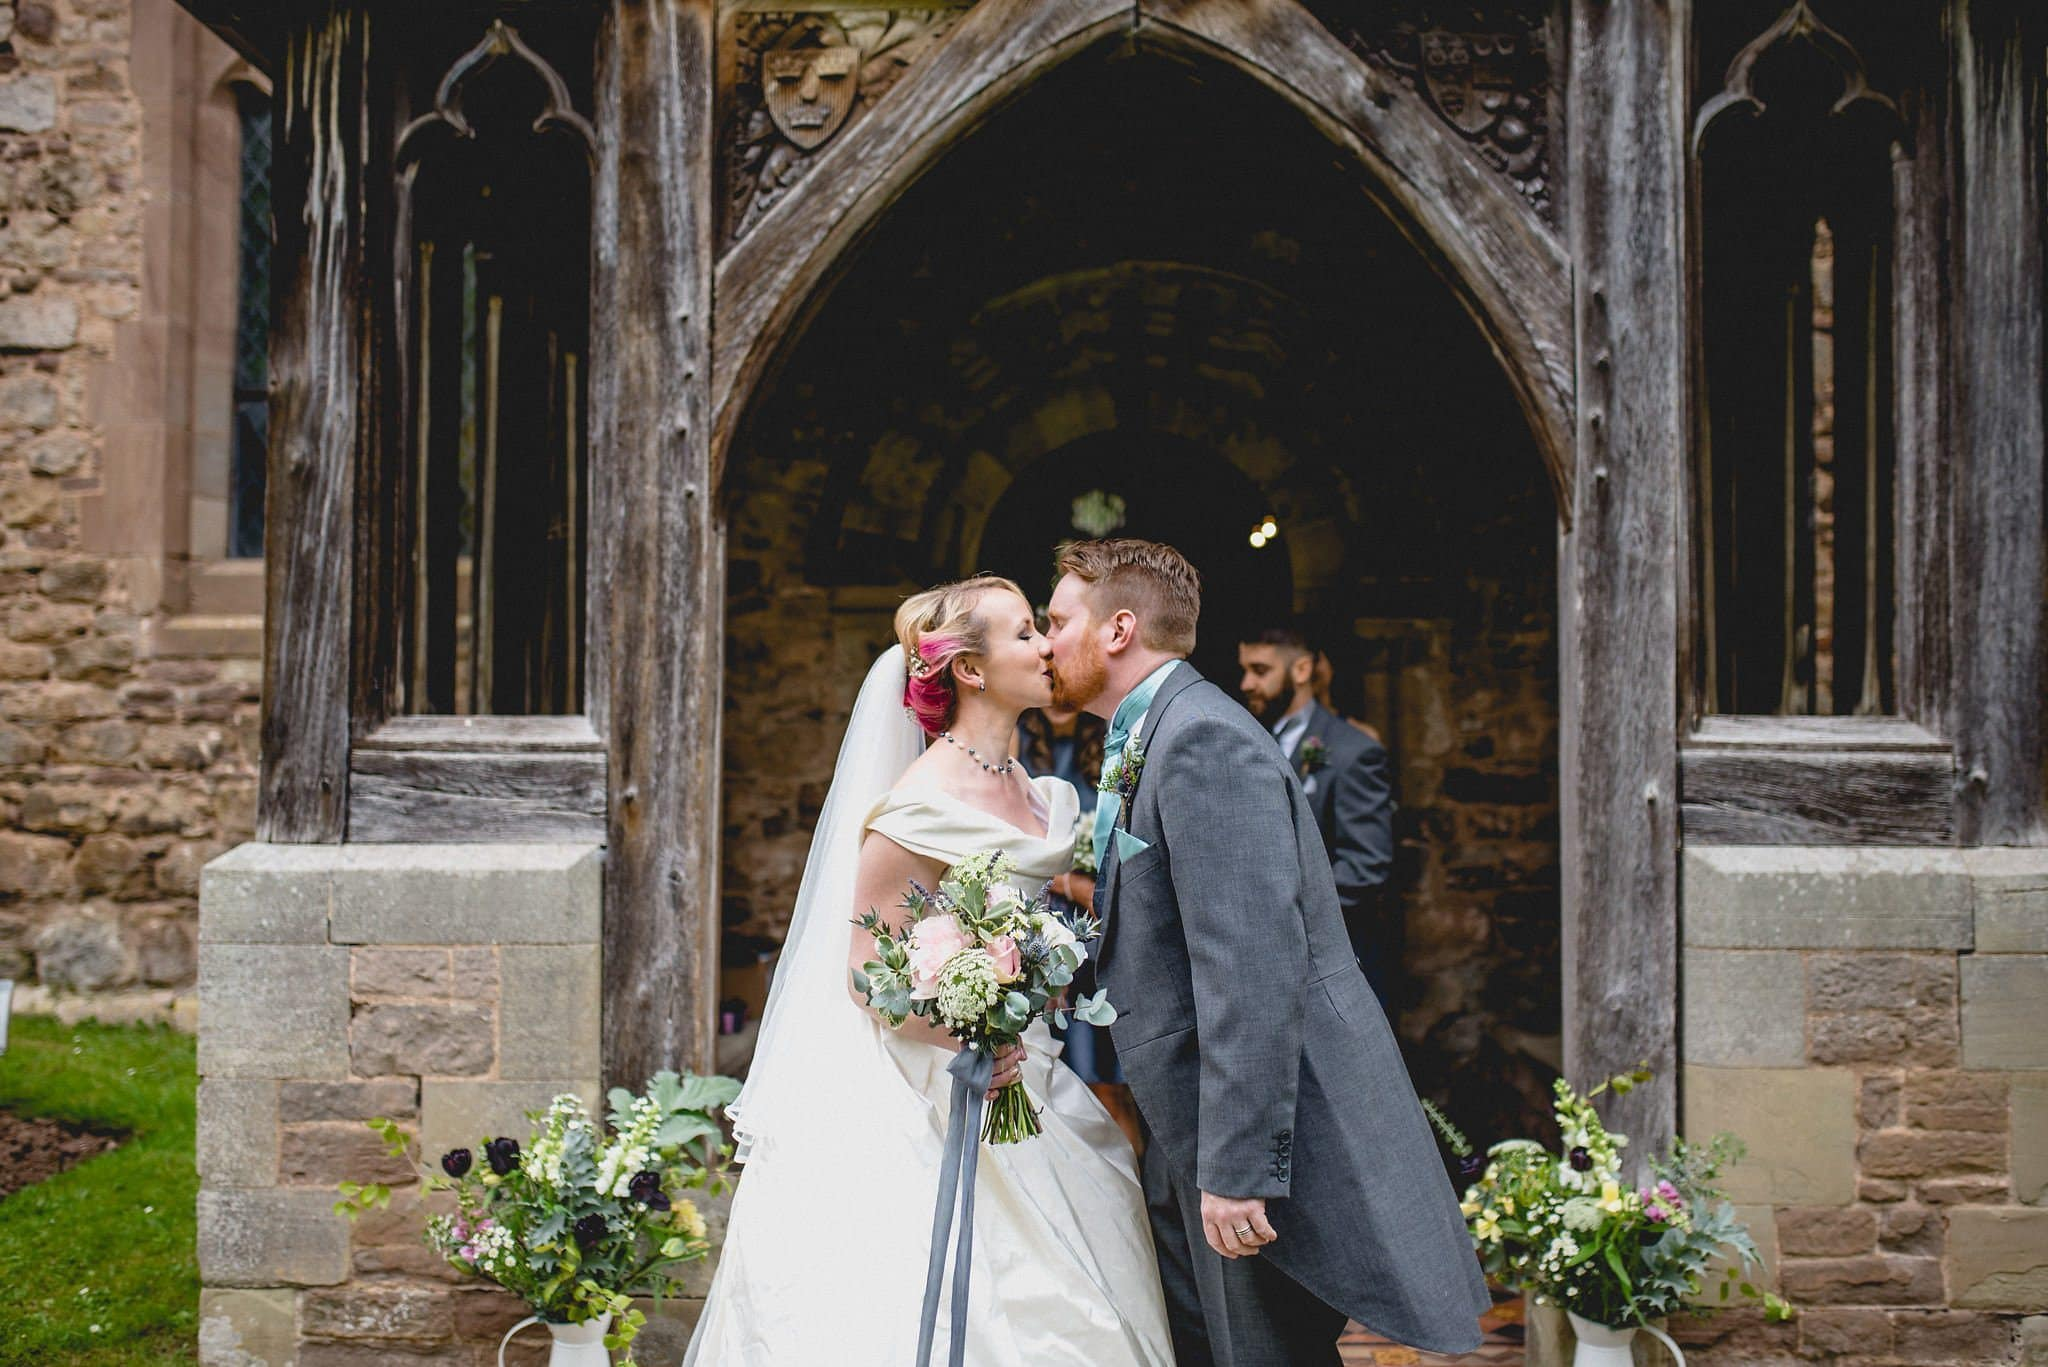 Hatty and Steven kiss outside the church after their wedding ceremony